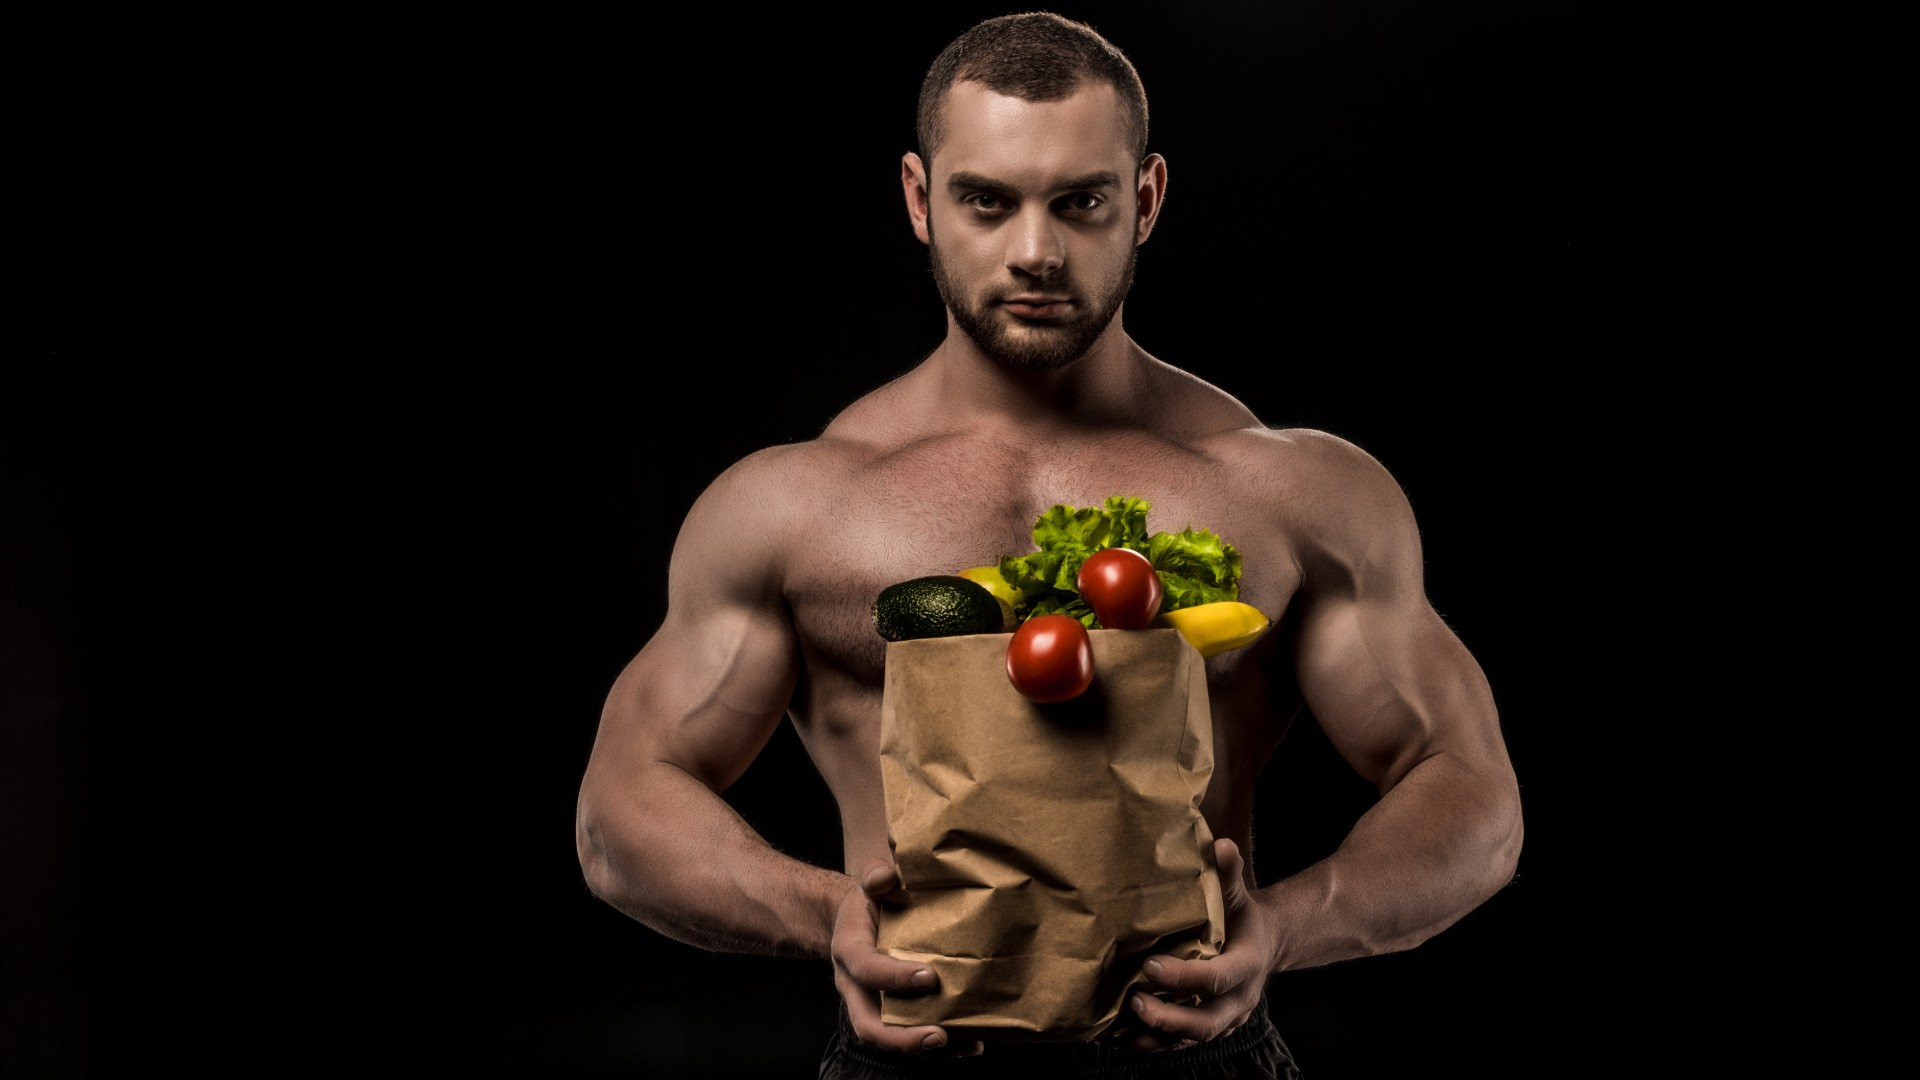 Plant-Based Diets Associated with Normal Testosterone Levels in Men